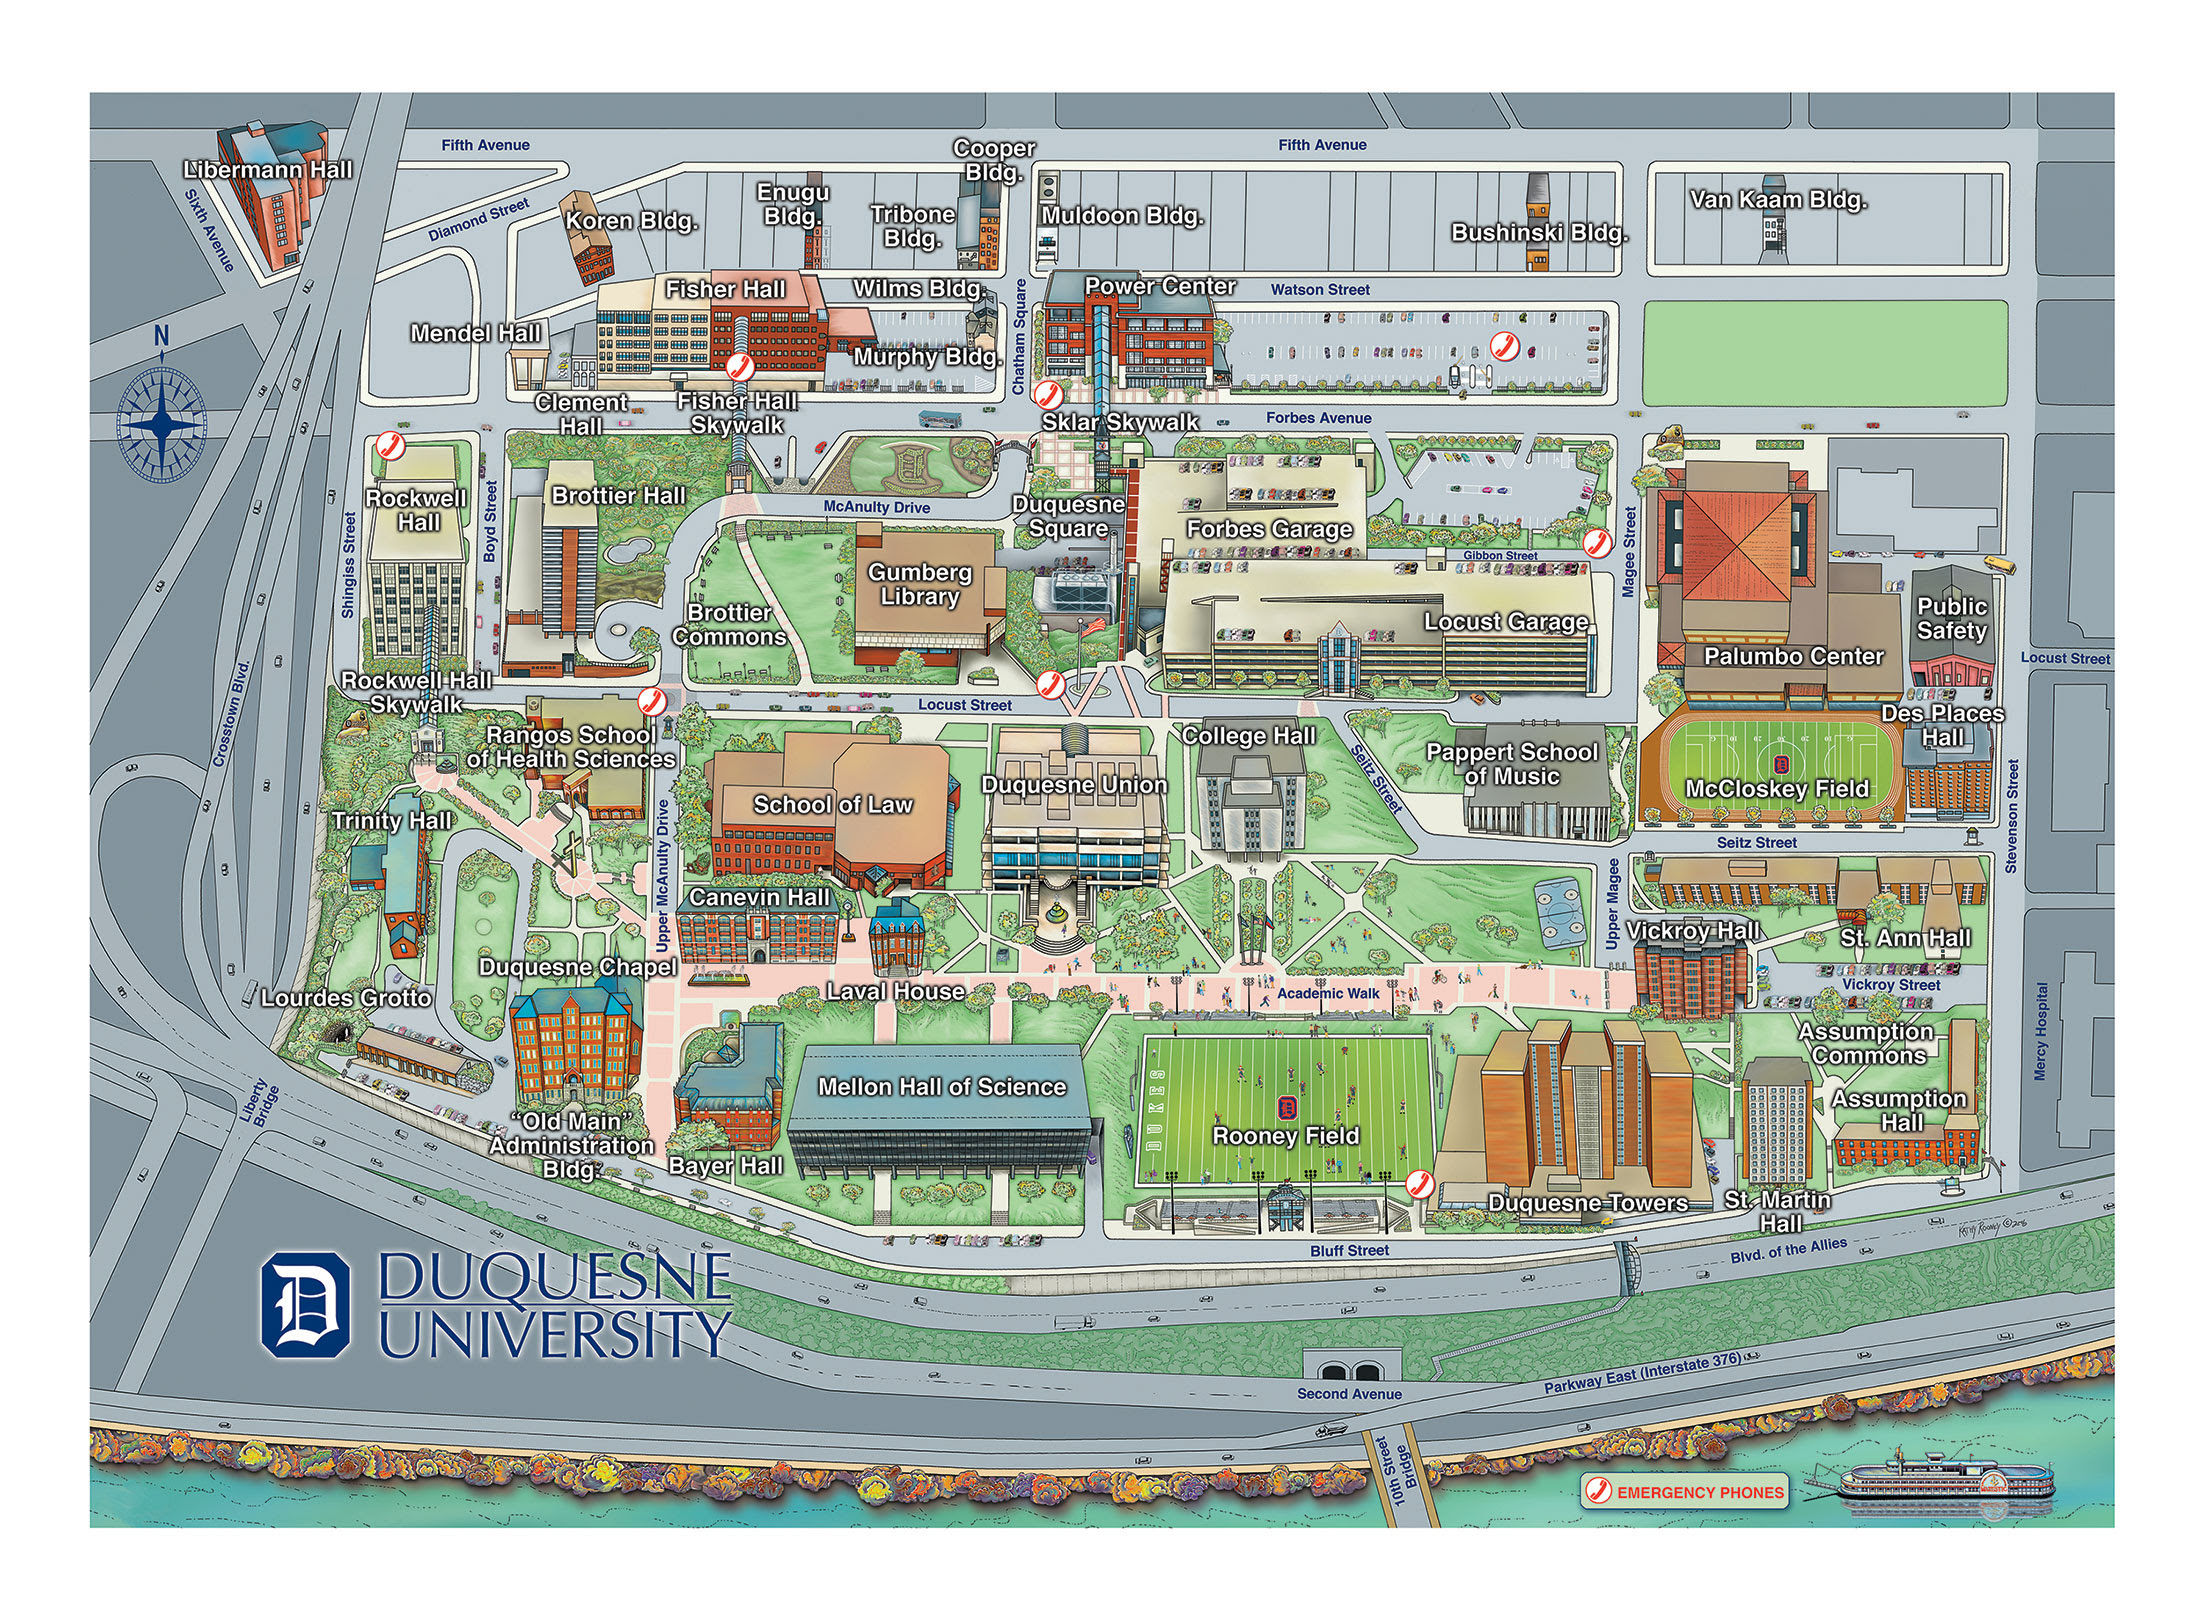 Pittsburgh Campus Map | Time Zones Map on university of pittsburgh street map, presbyterian hospital pittsburgh campus map, u of minn campus map, upmc pittsburgh map,